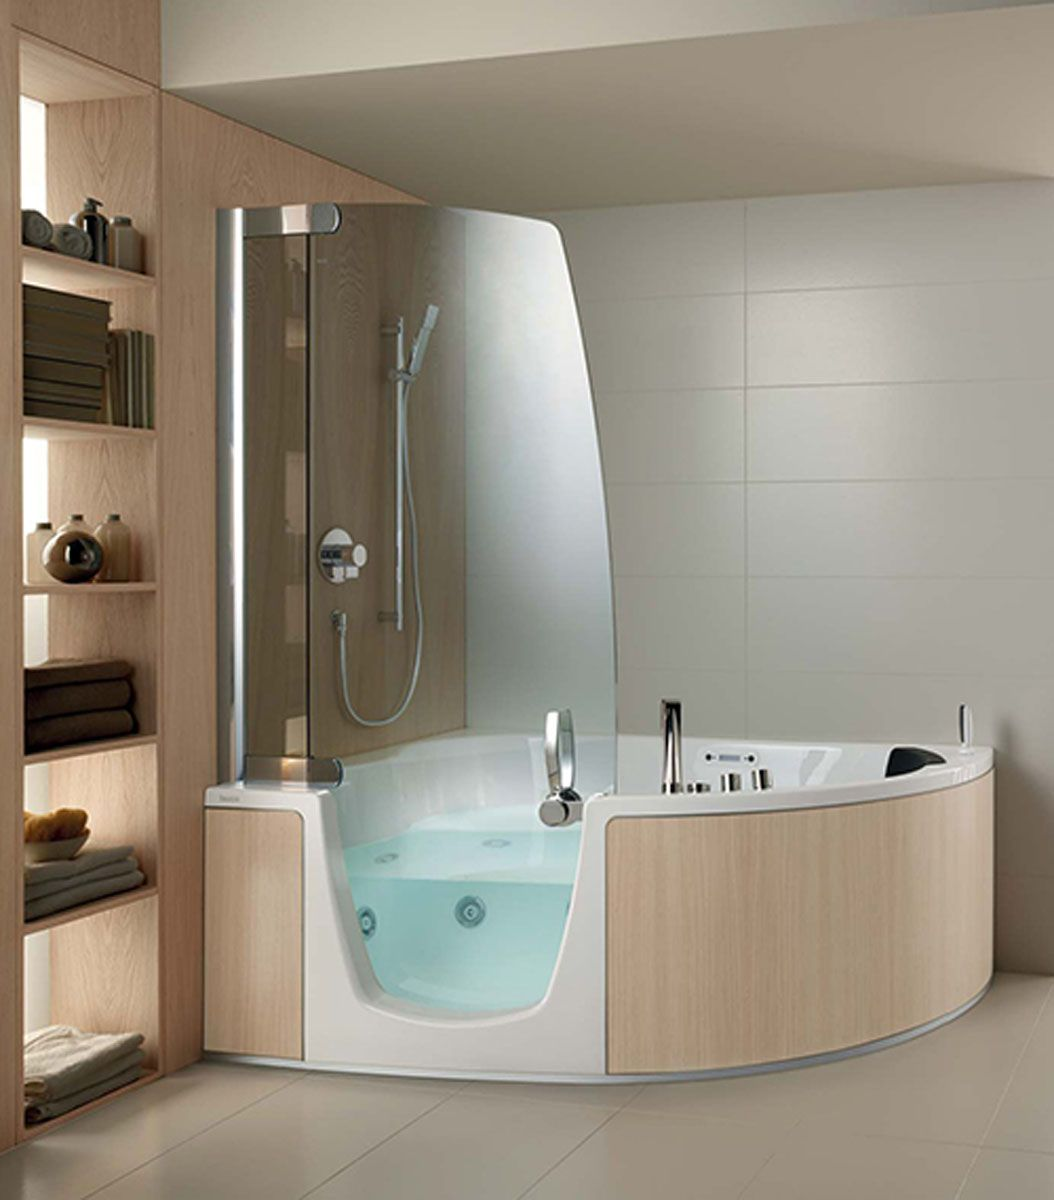 jacuzzi bathroom corner amazing small in shower tub bathtub combo